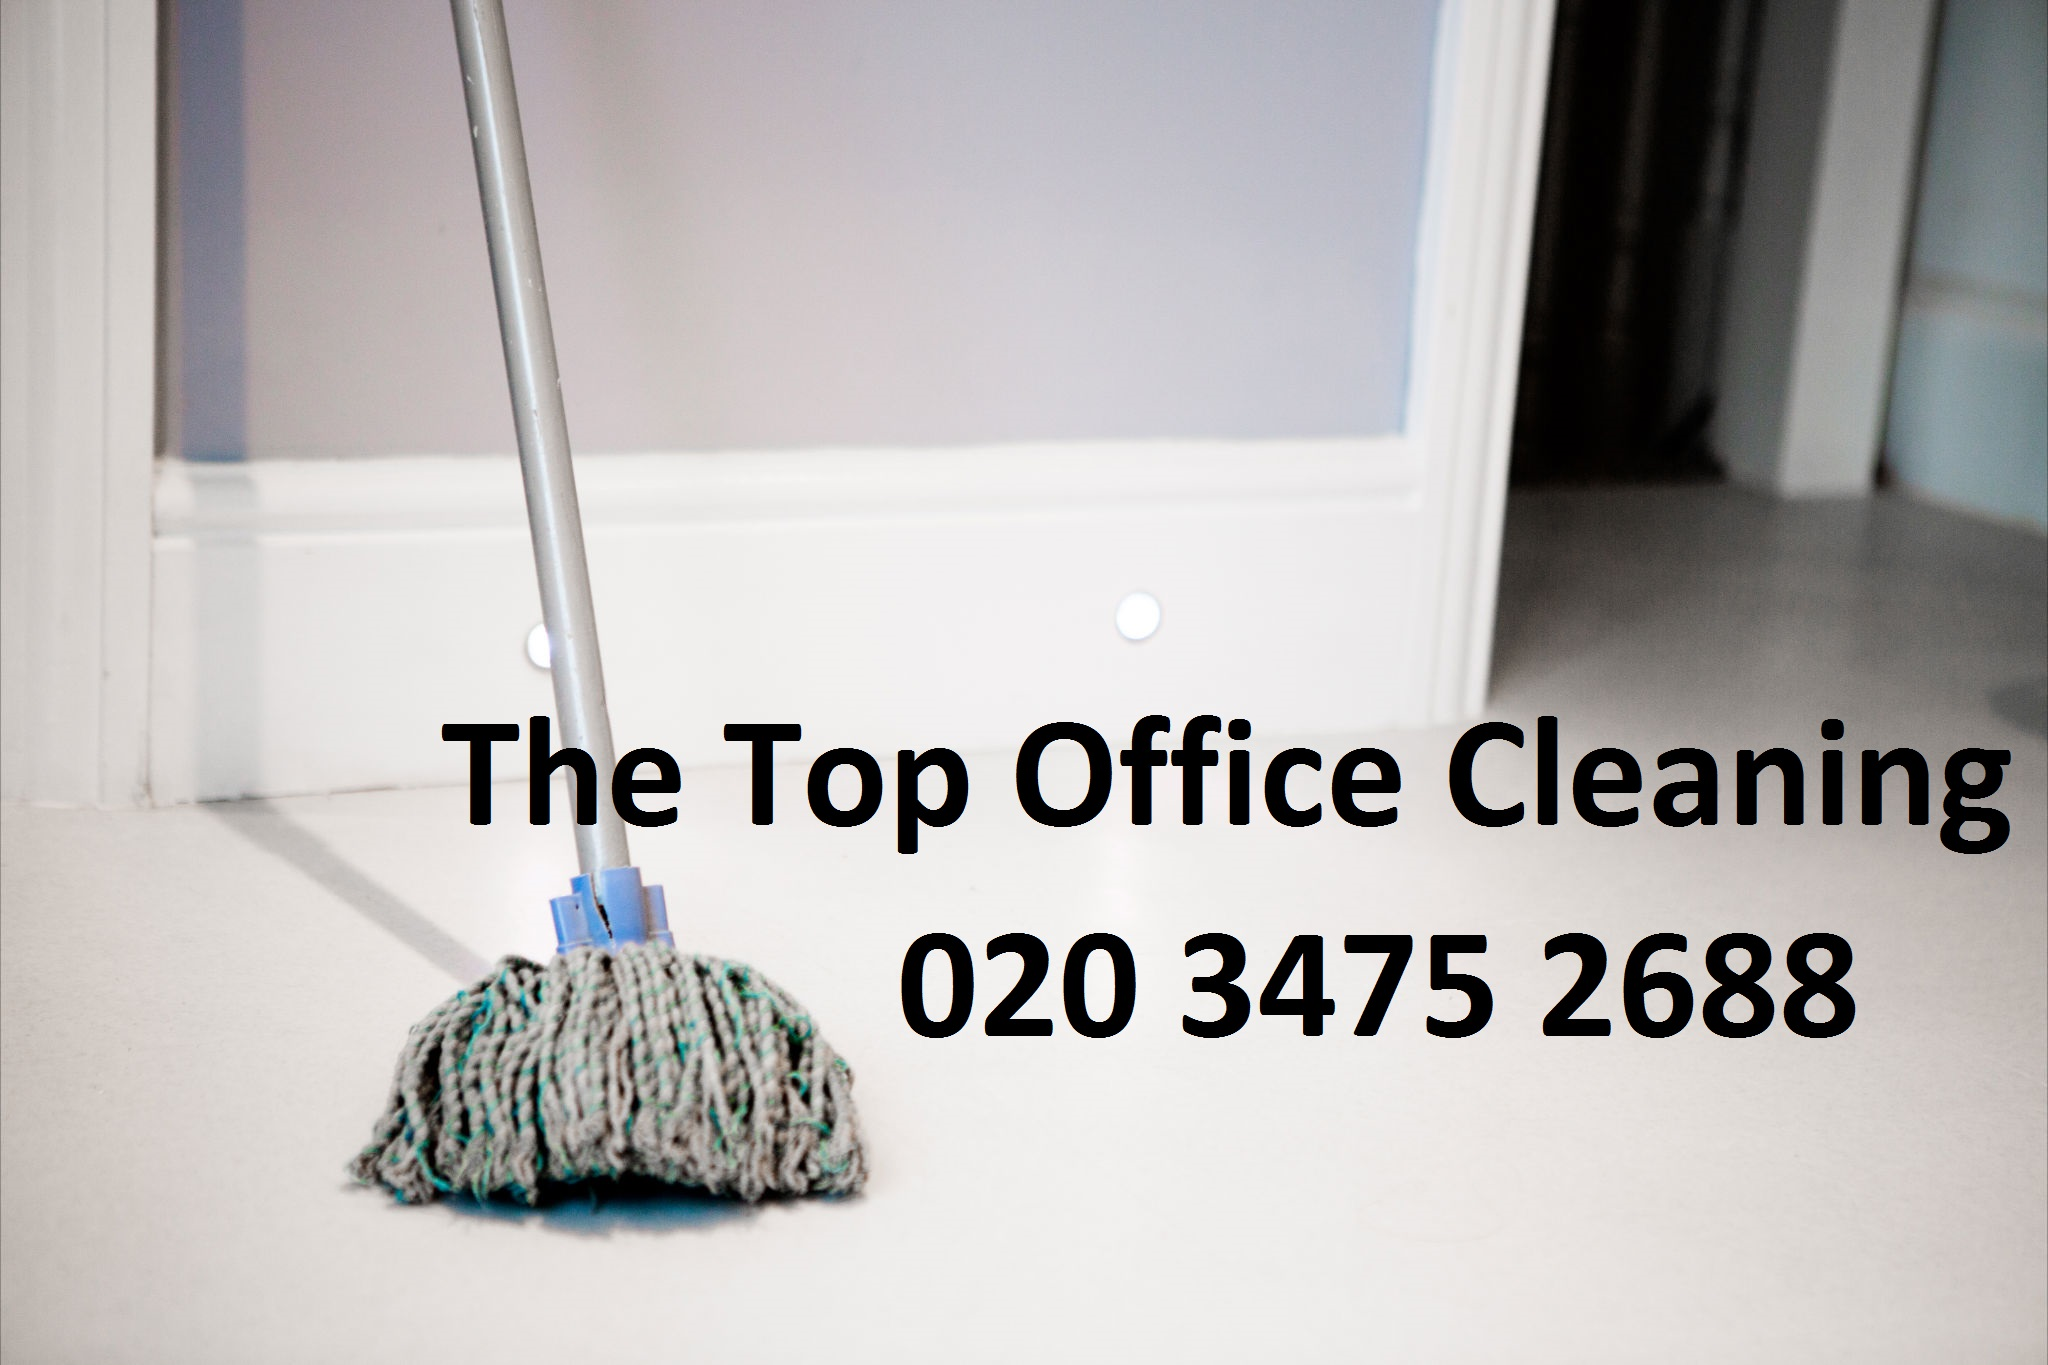 Primary benefits of employing Office Cleaners